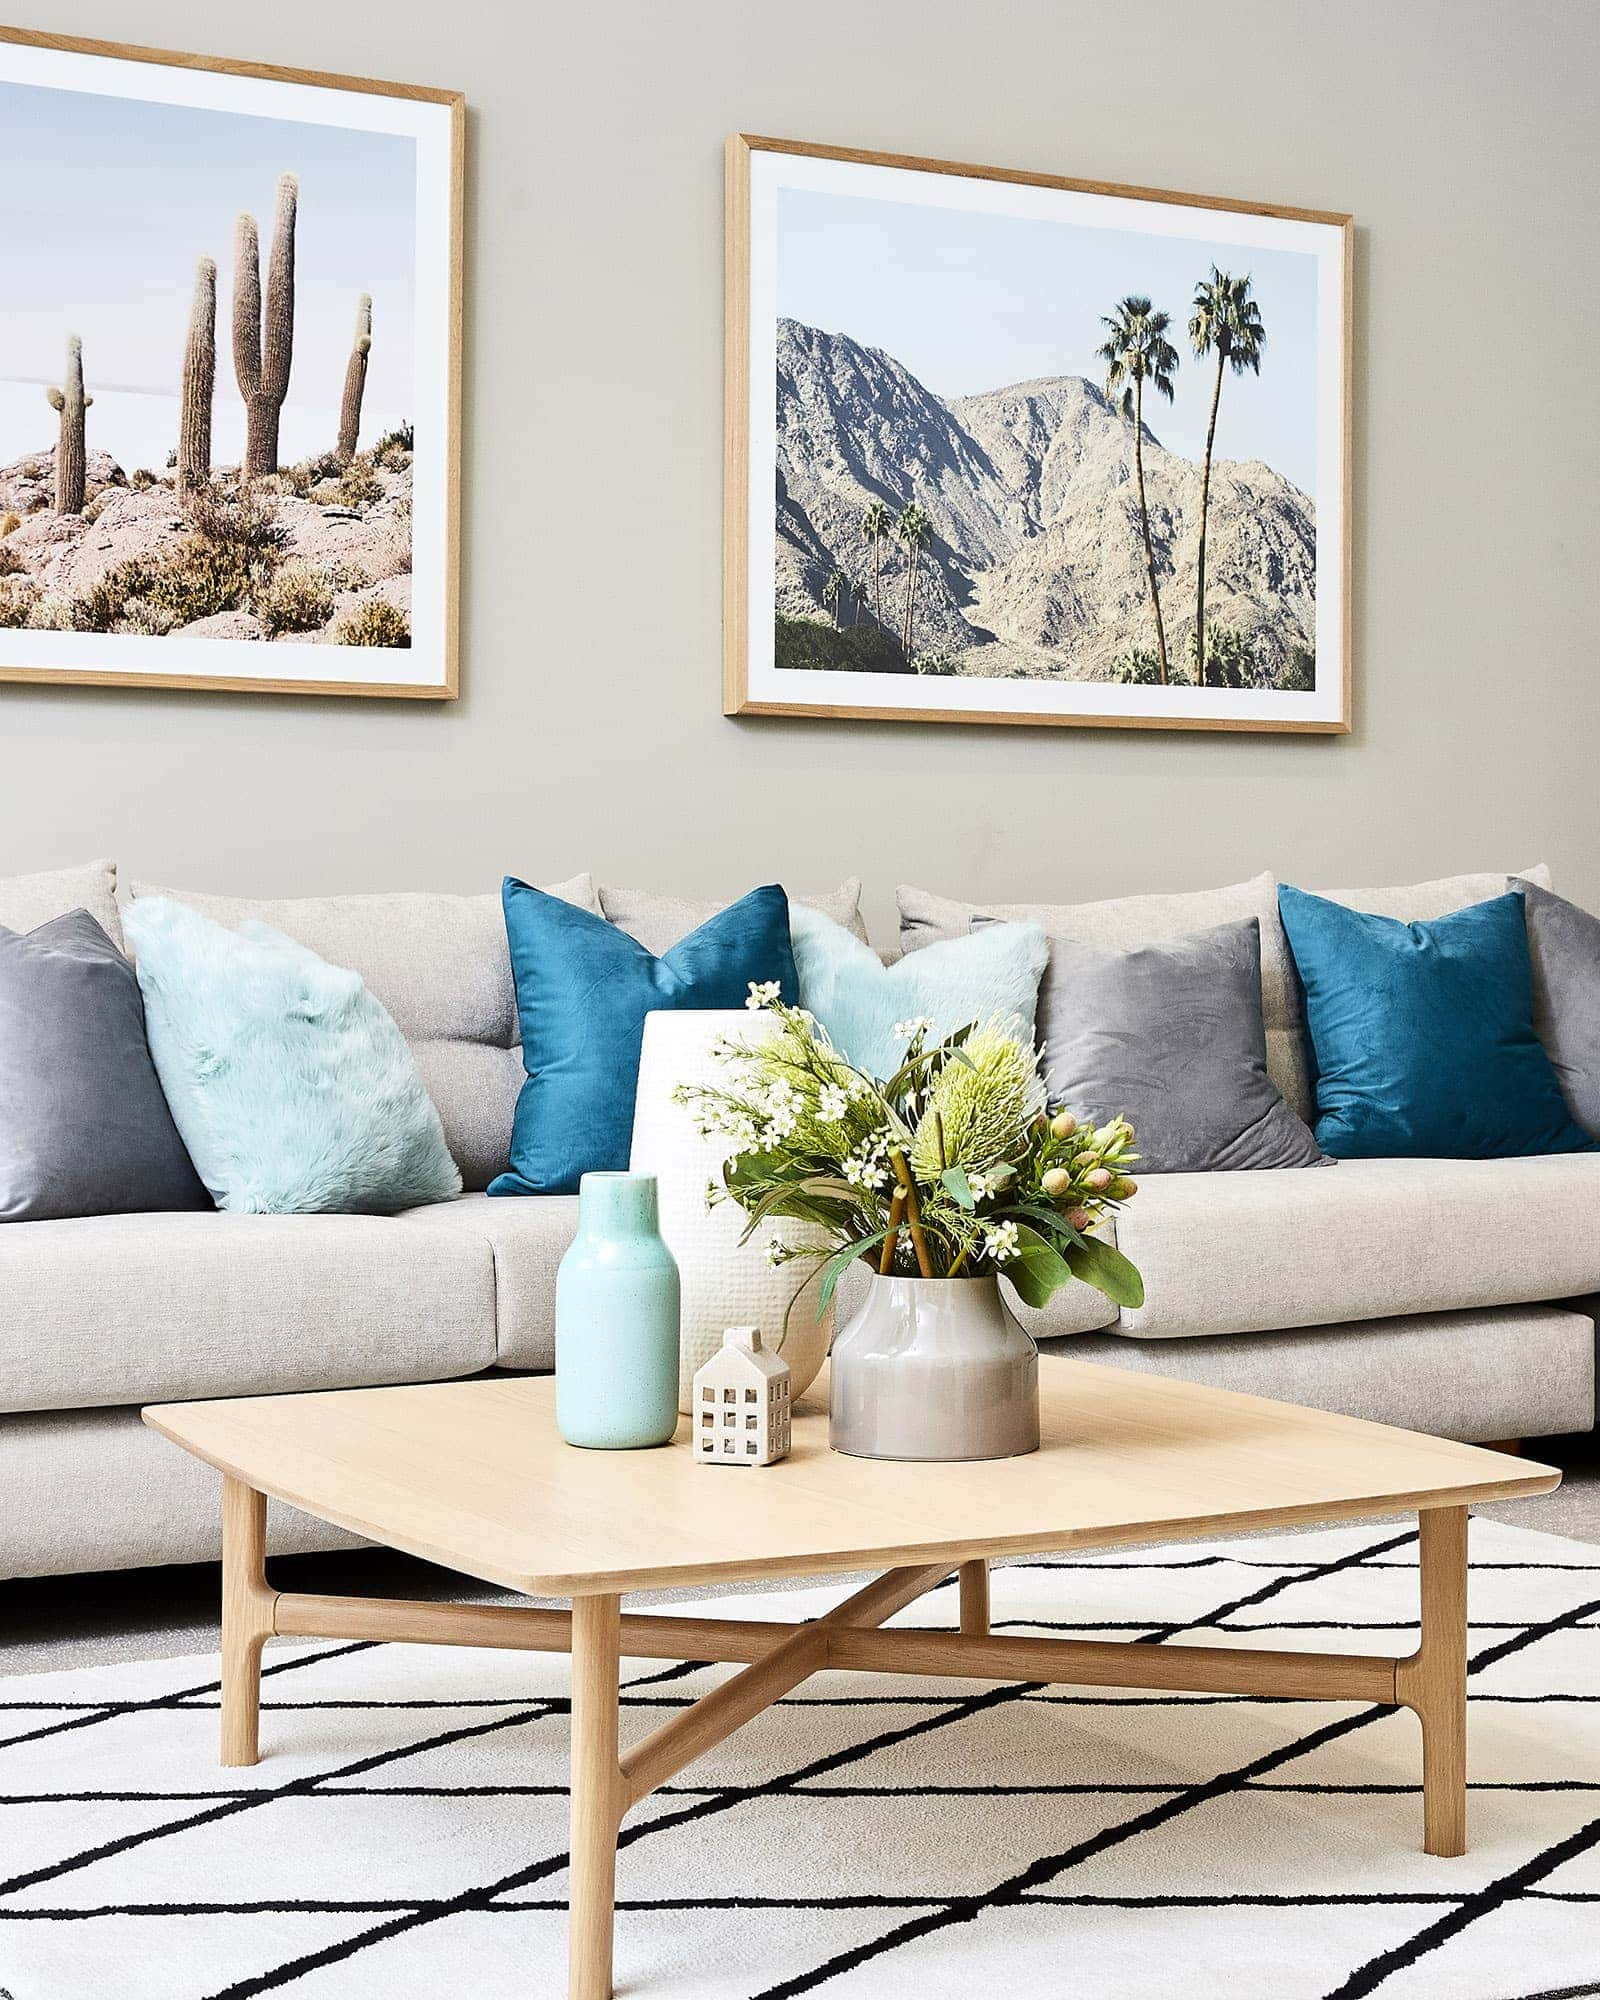 oak coffee table in living room with desert artwork and teal cushions from lorraine lea spring decorating